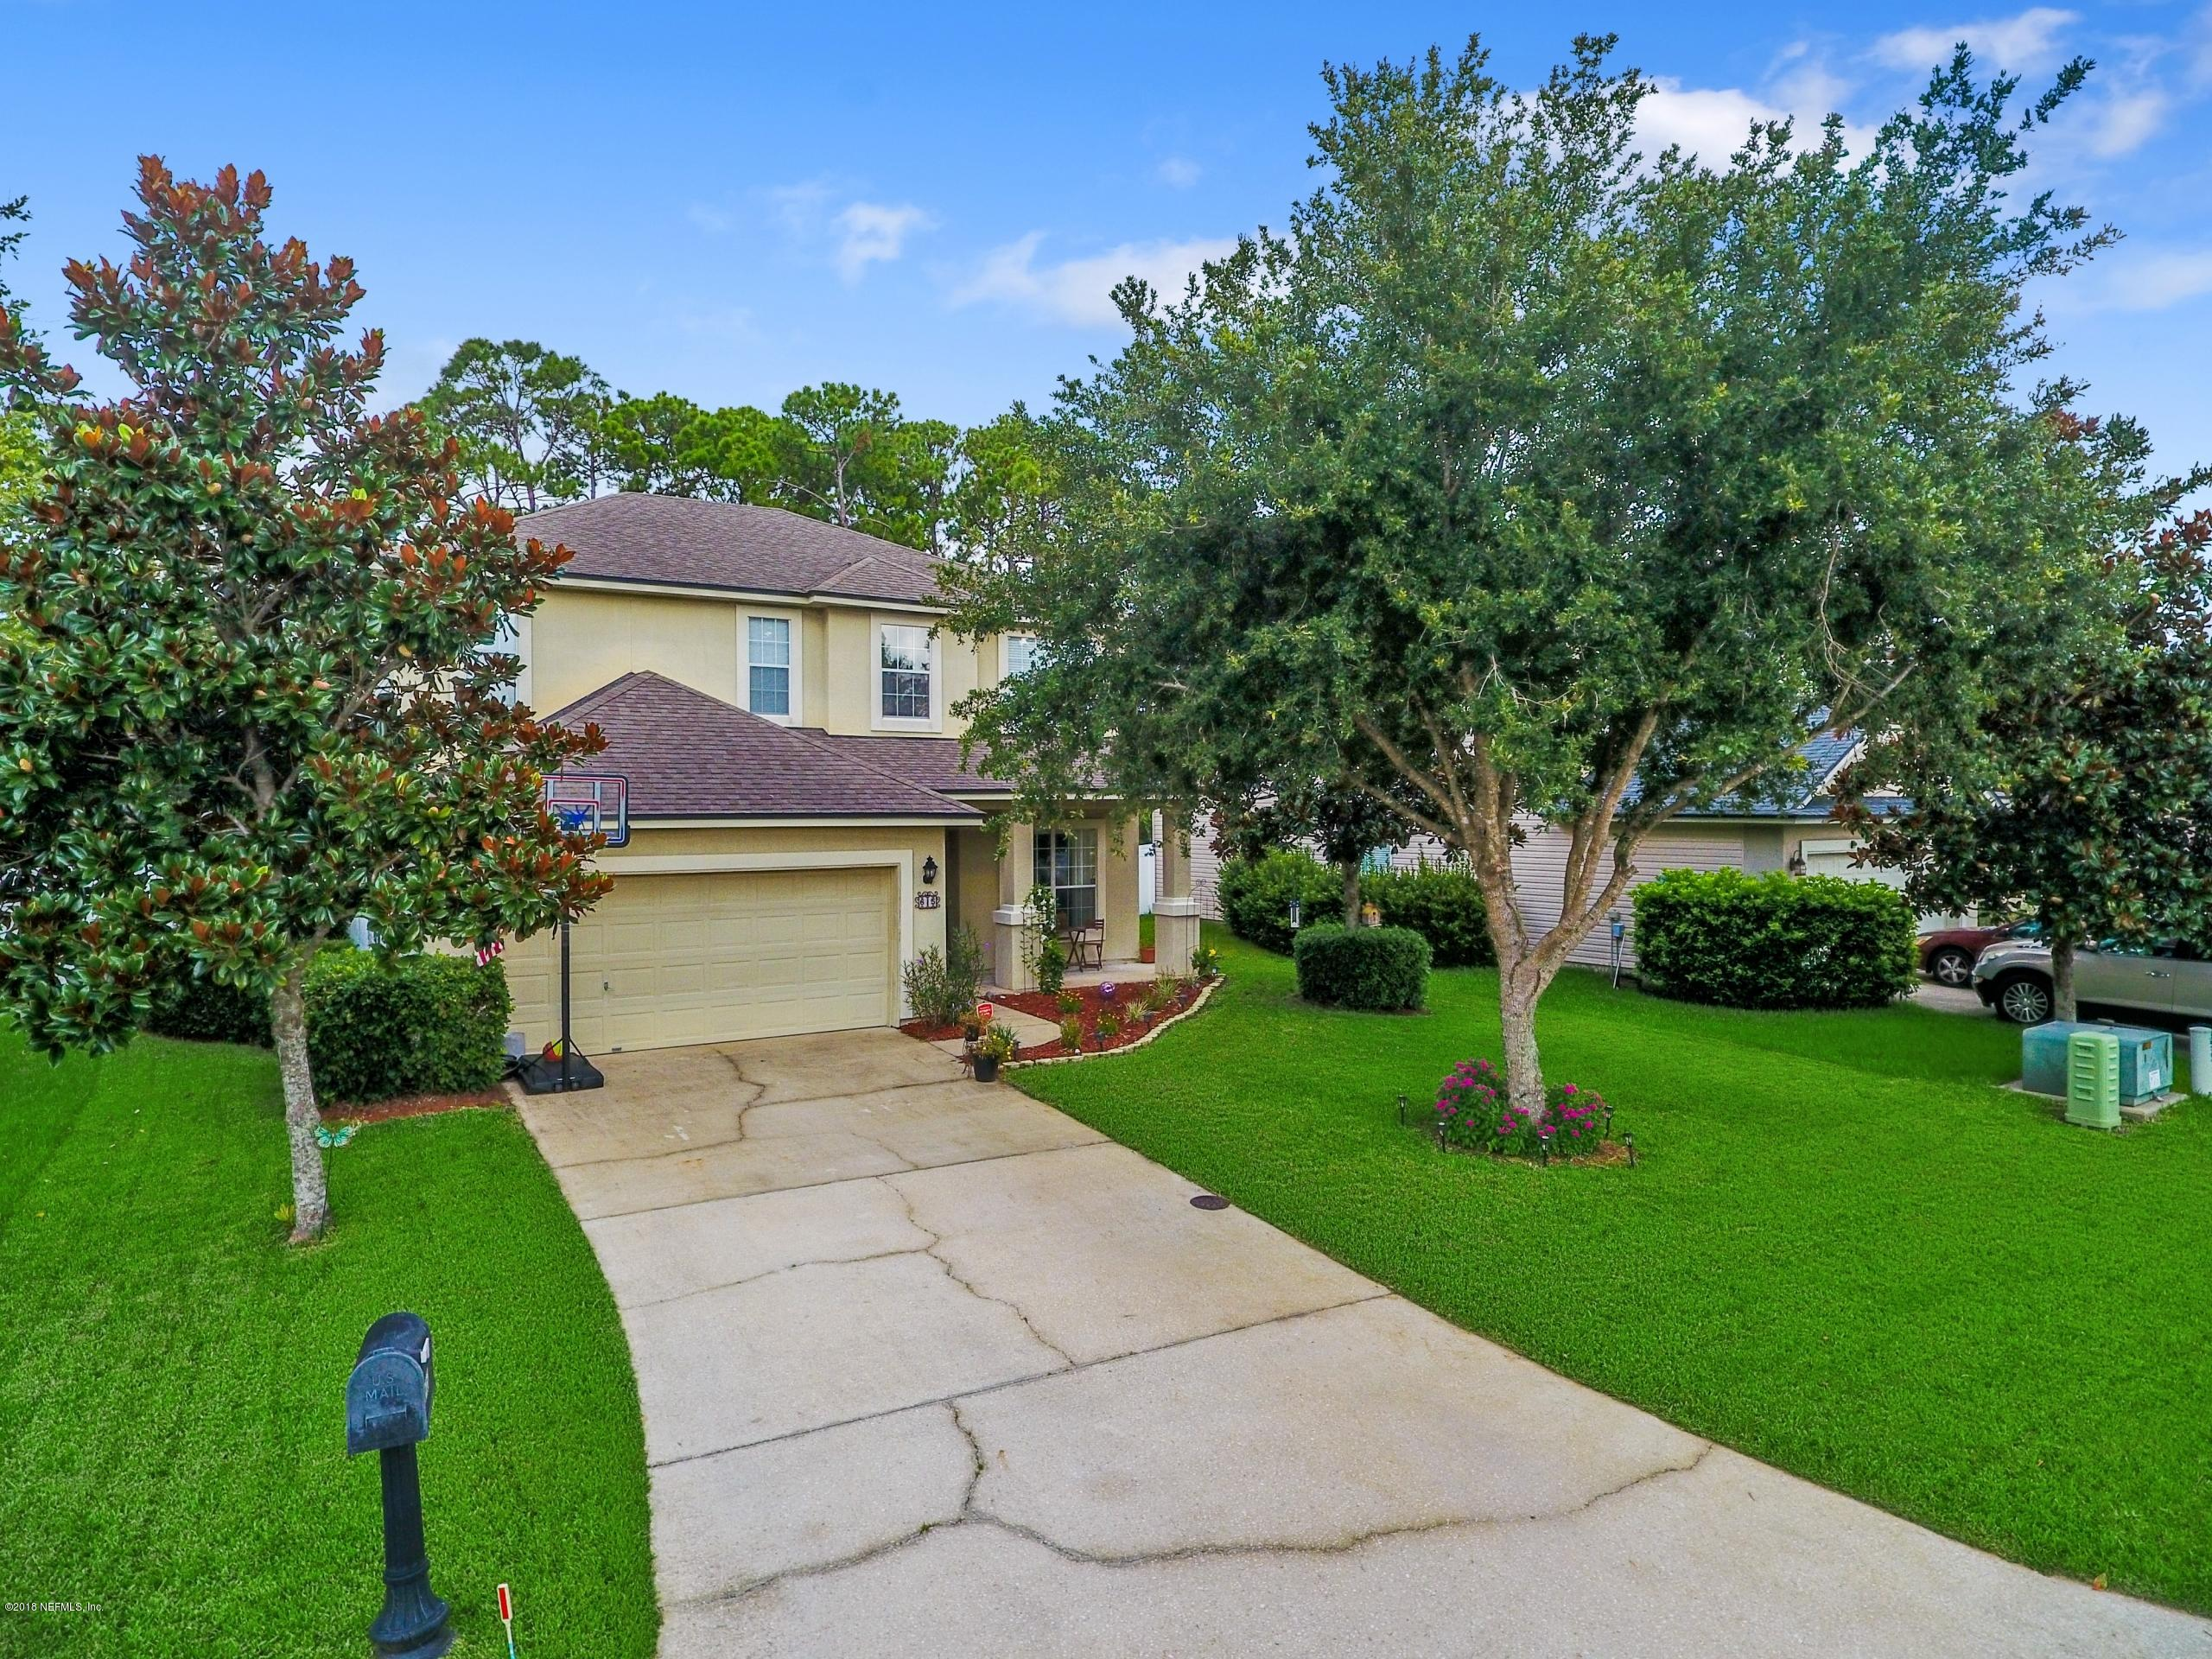 615 TREE GARDEN, ST AUGUSTINE, FLORIDA 32086, 4 Bedrooms Bedrooms, ,2 BathroomsBathrooms,Residential - single family,For sale,TREE GARDEN,948335